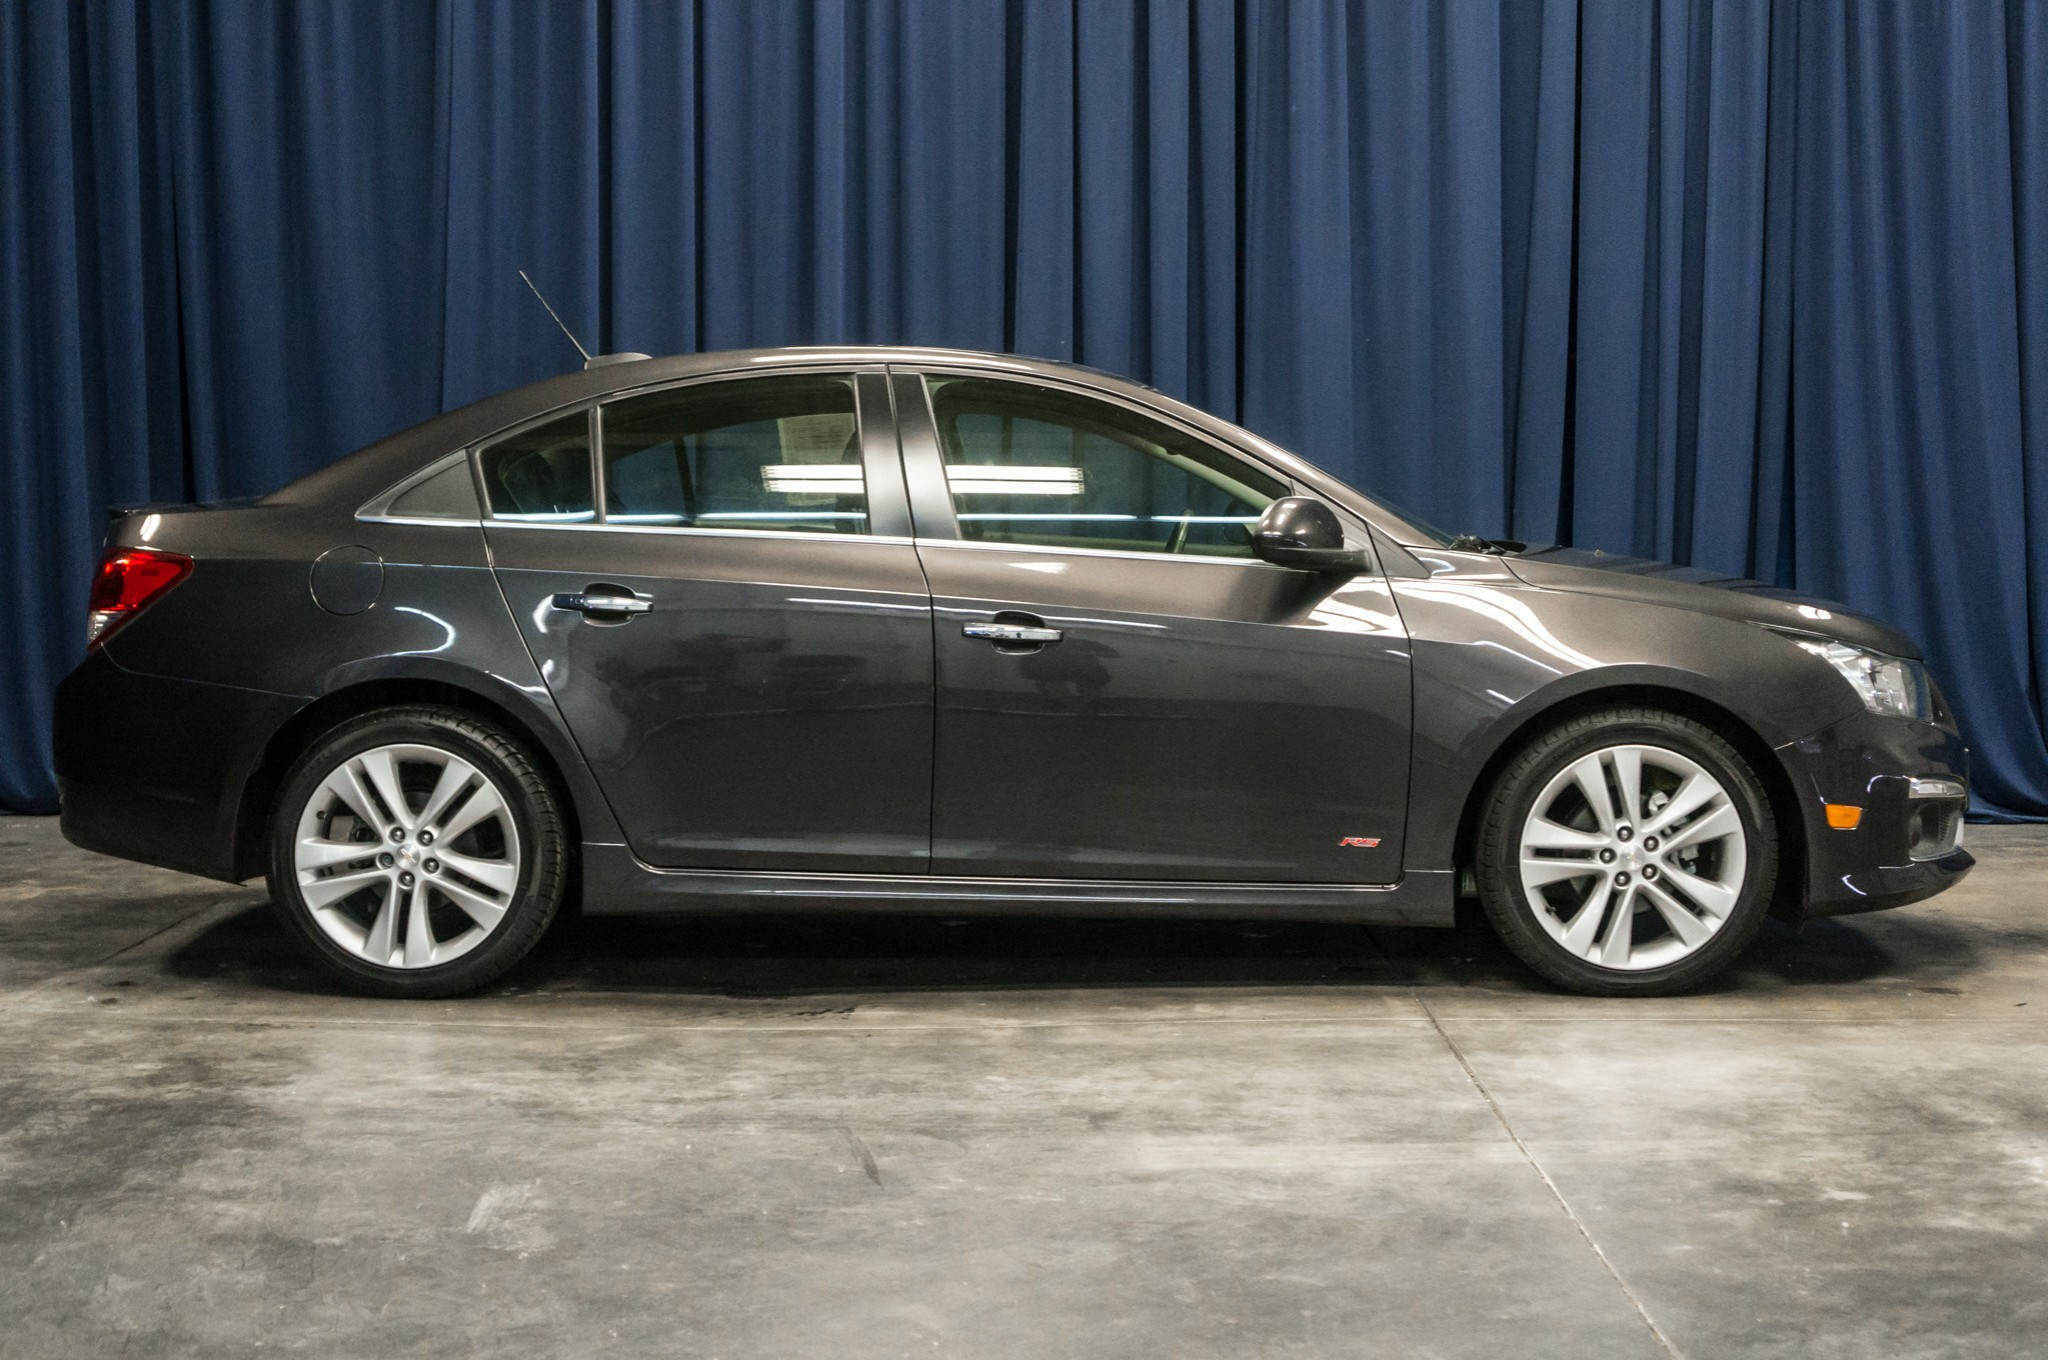 chevrolet photo cruze vehicles webster in sale oh for vehicle south used vehiclesearchresults